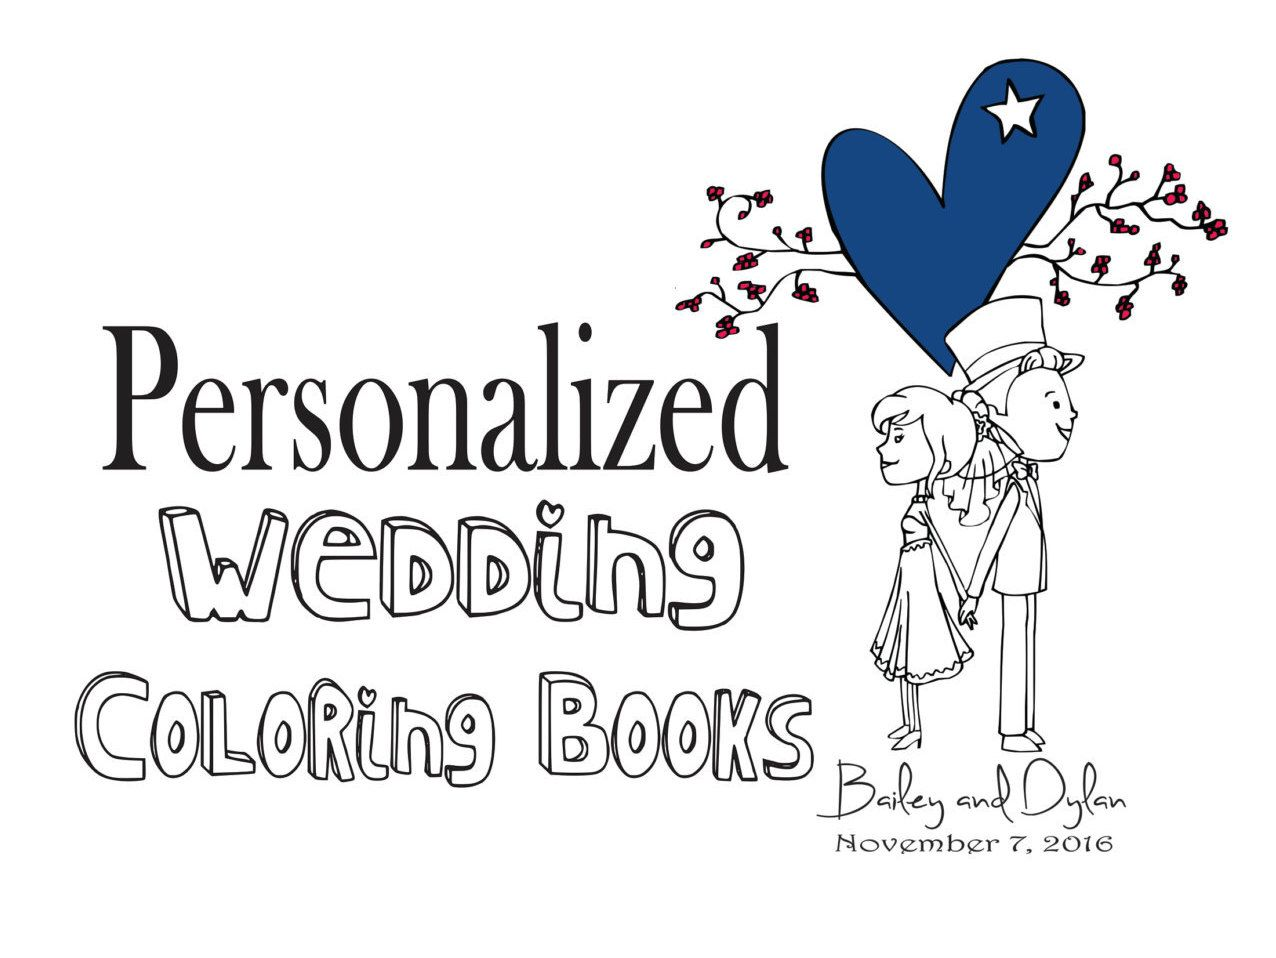 rustic wedding coloring book for your ring bearer of flower girl customize personalized wedding - Flower Girl Coloring Book